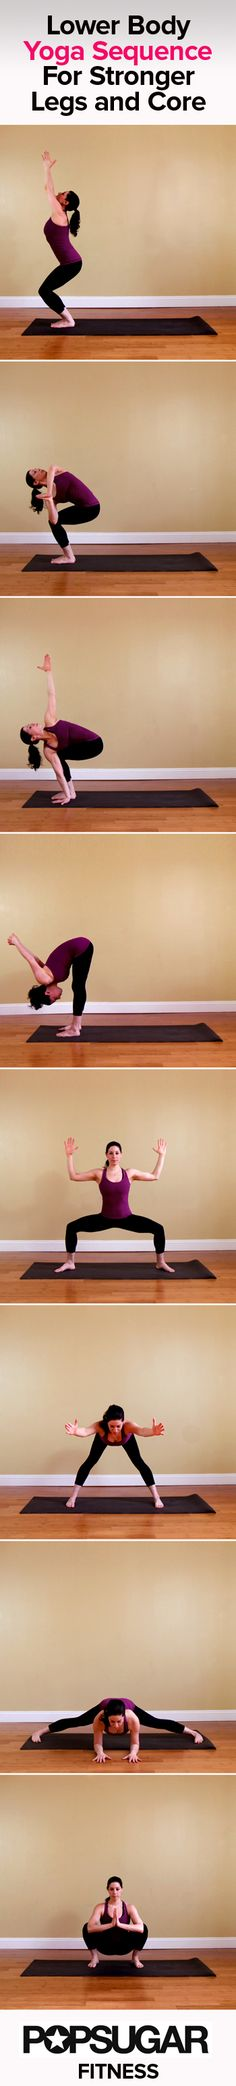 Yoga Sequence For Legs and Core